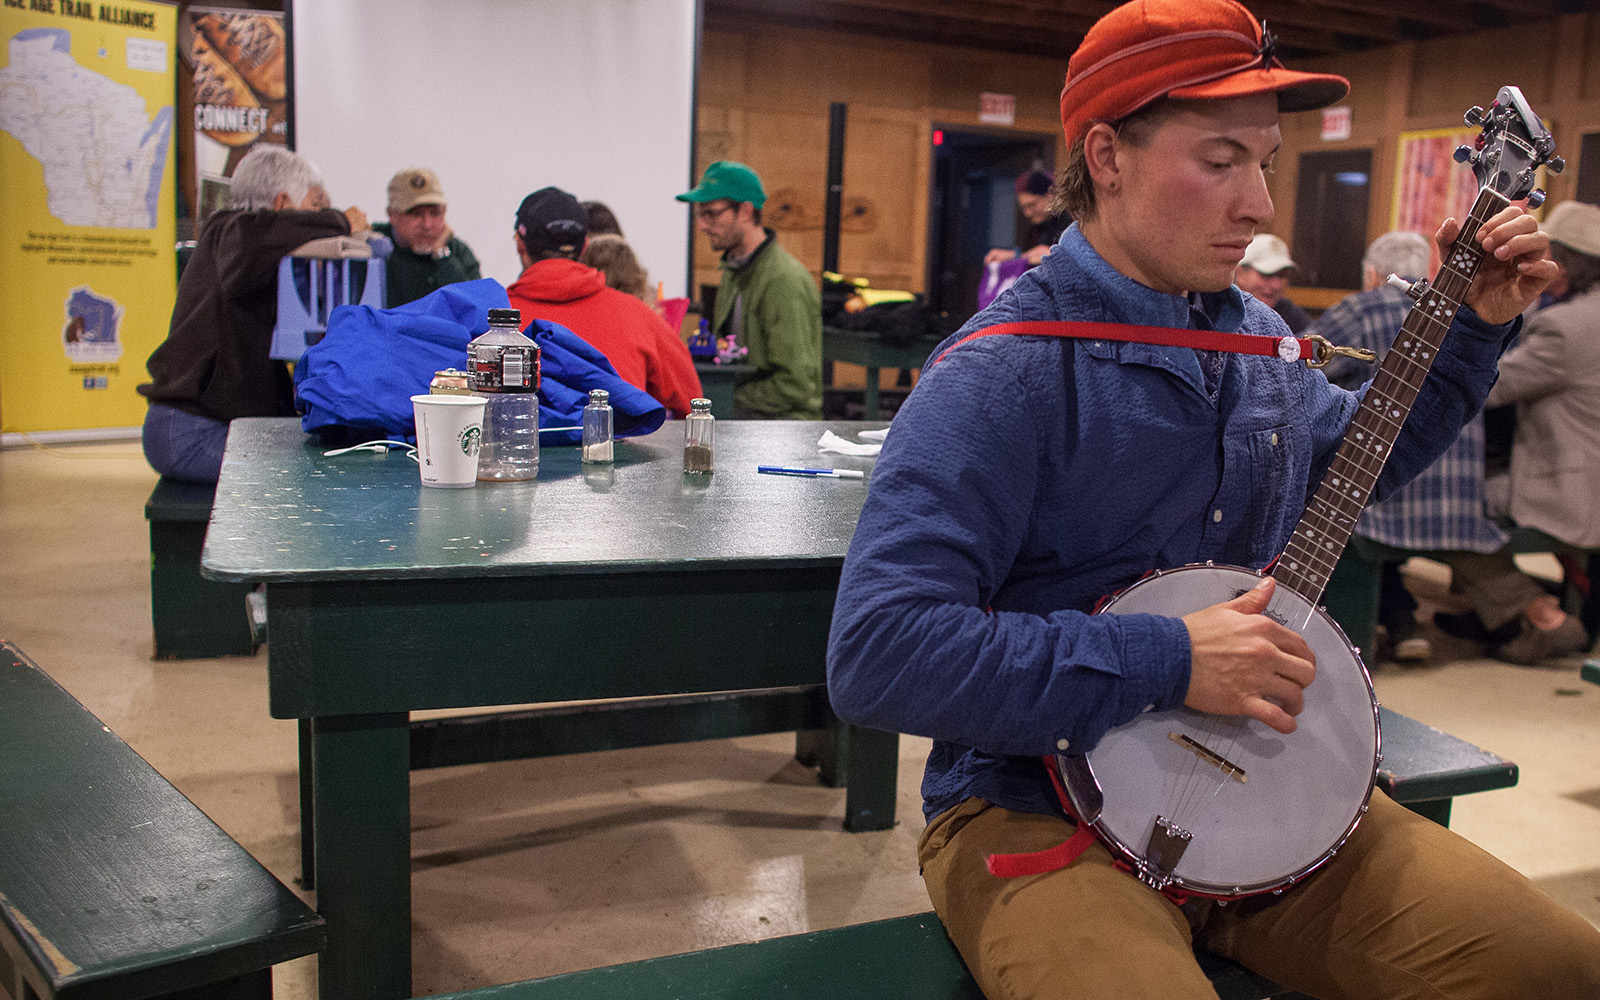 Northland College student plays banjo during a break from building Ice Age Trail.